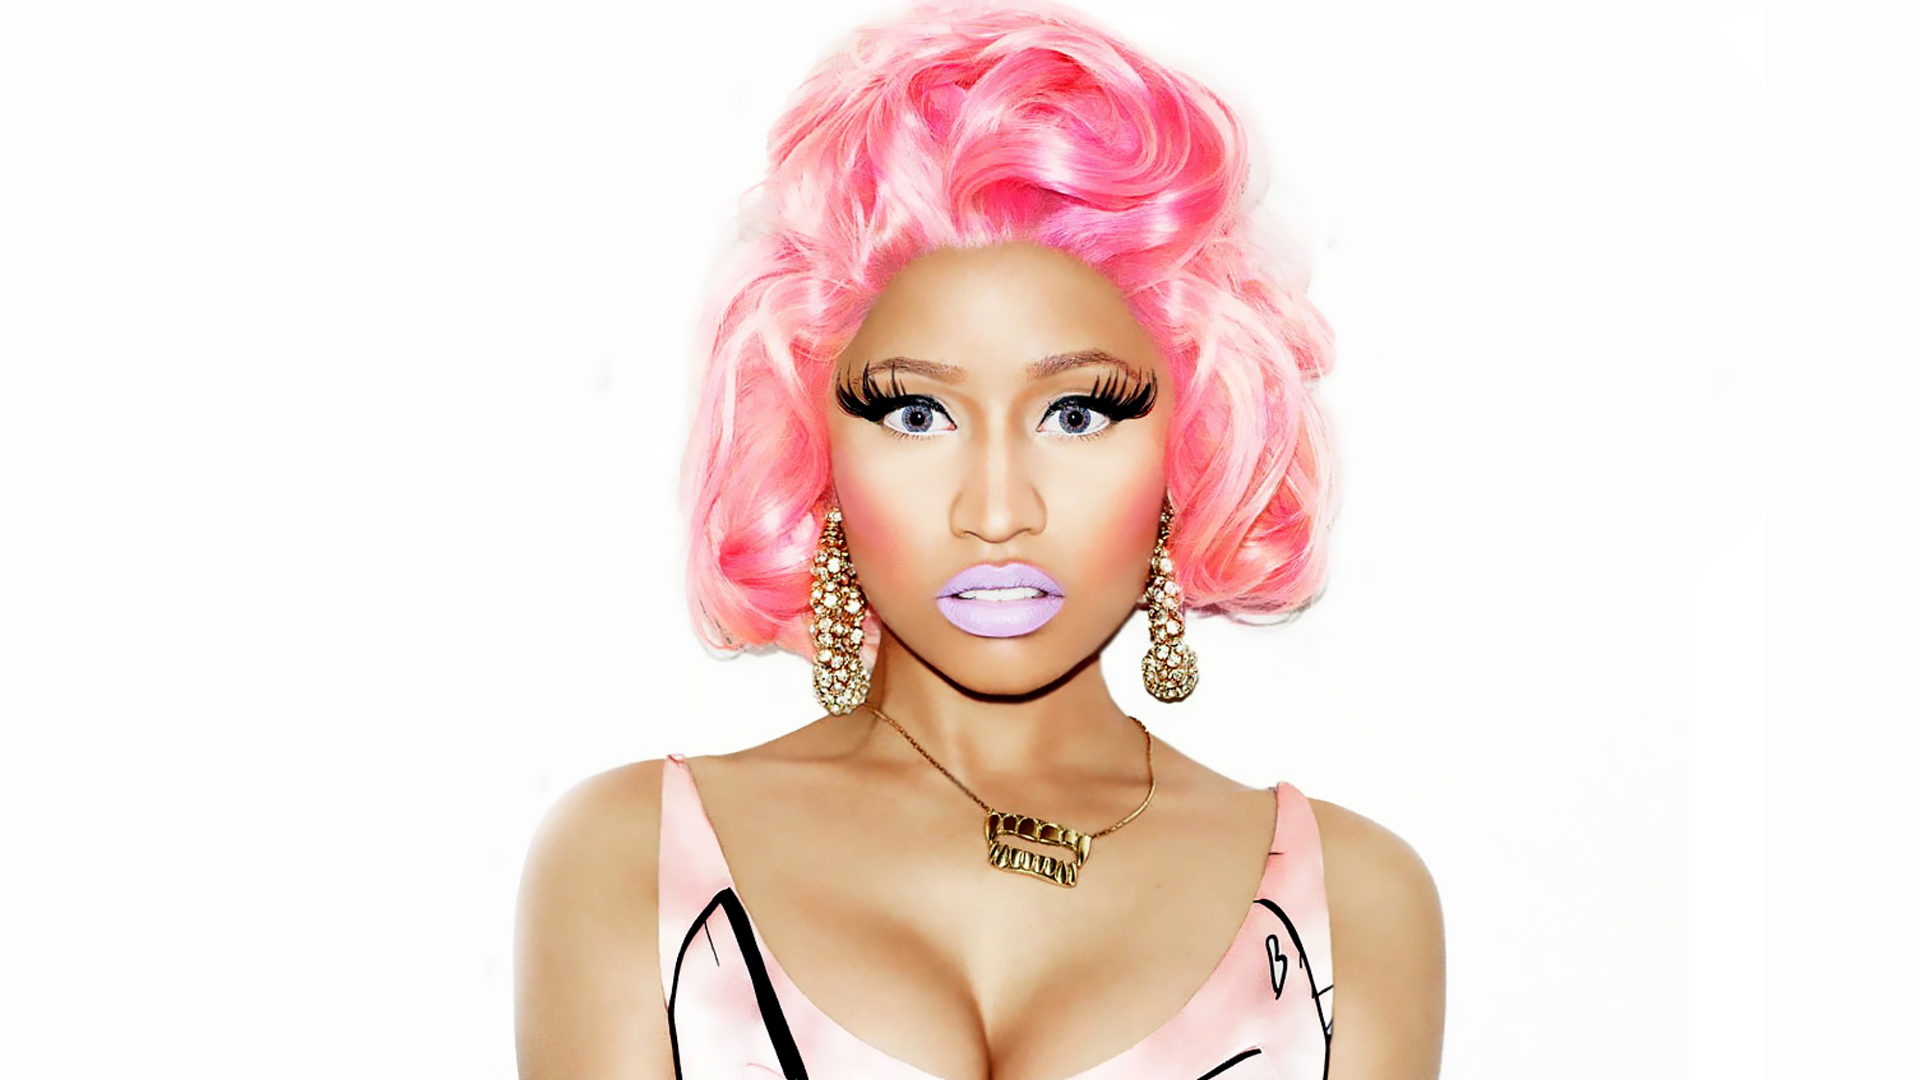 Nicki minaj wallpaper 1920x1080 64209 nicki minaj voltagebd Image collections